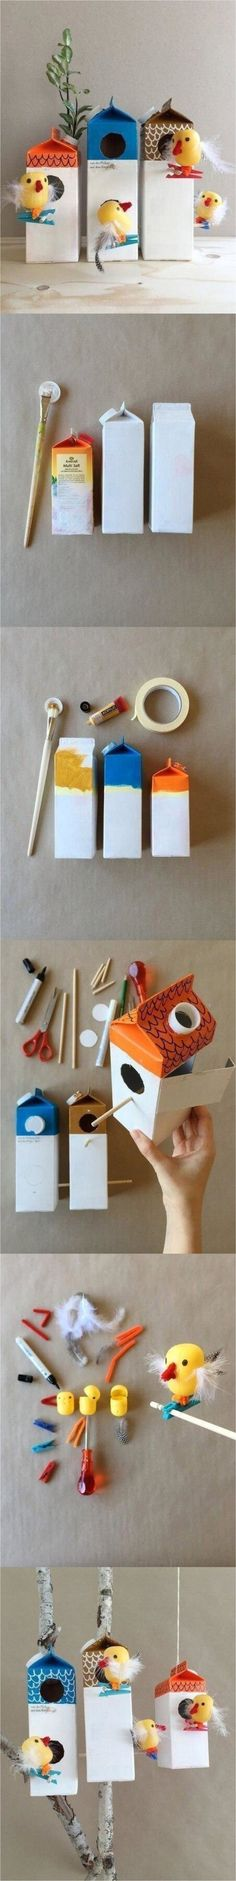 Bird Crafts, Cute Crafts, Diy And Crafts, Arts And Crafts, Creative Kids, Creative Crafts, Diy For Kids, Crafts For Kids, Preschool Themes